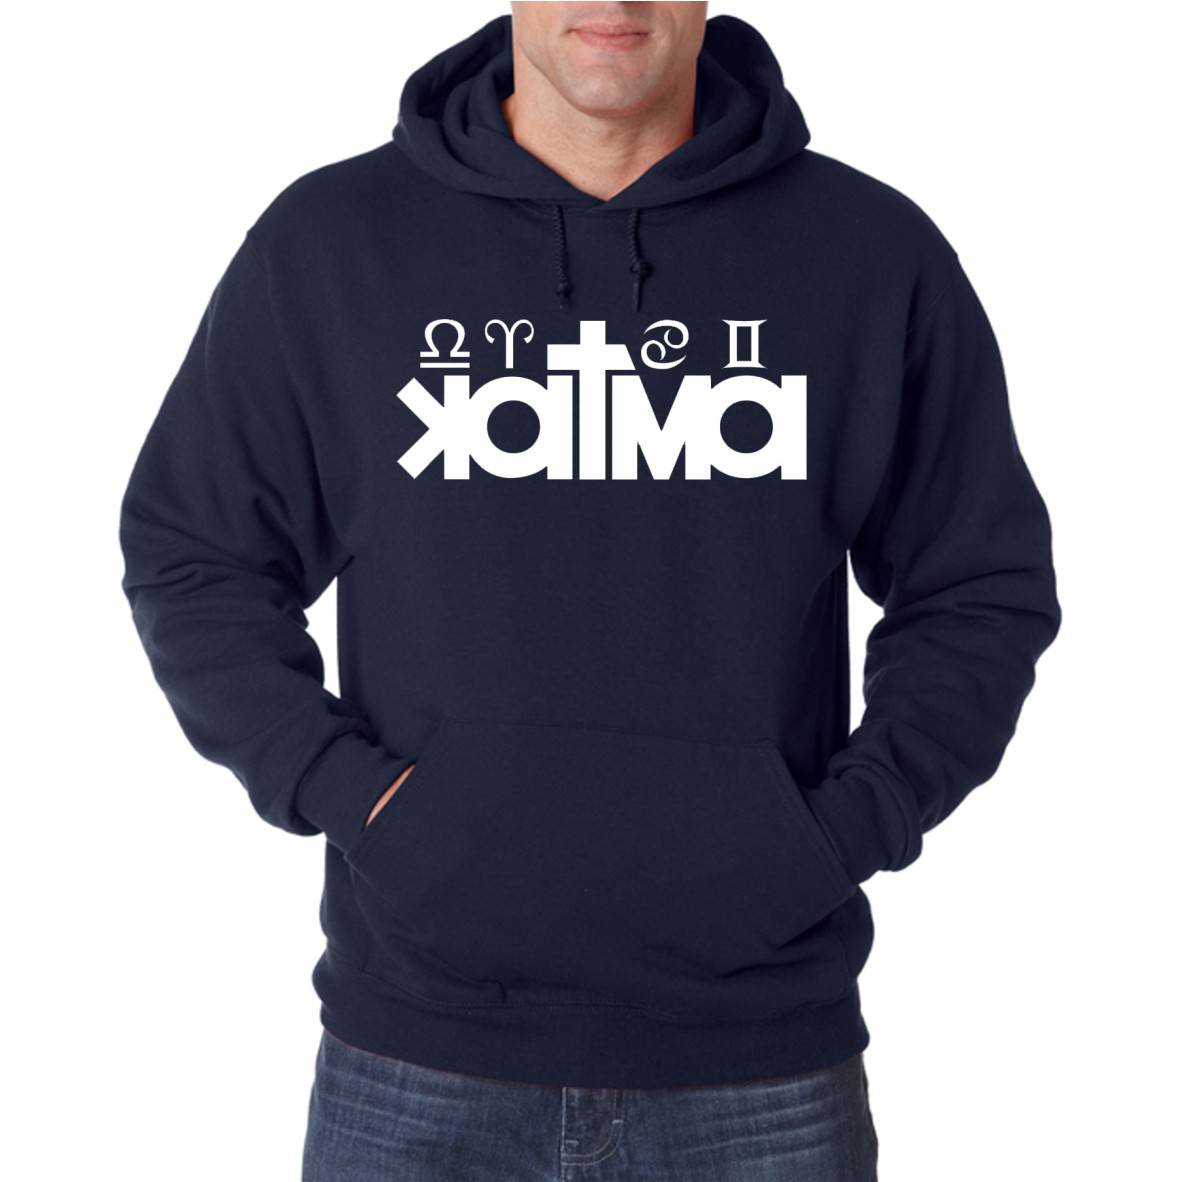 KATMA OFFICIAL UNISEX HOODED